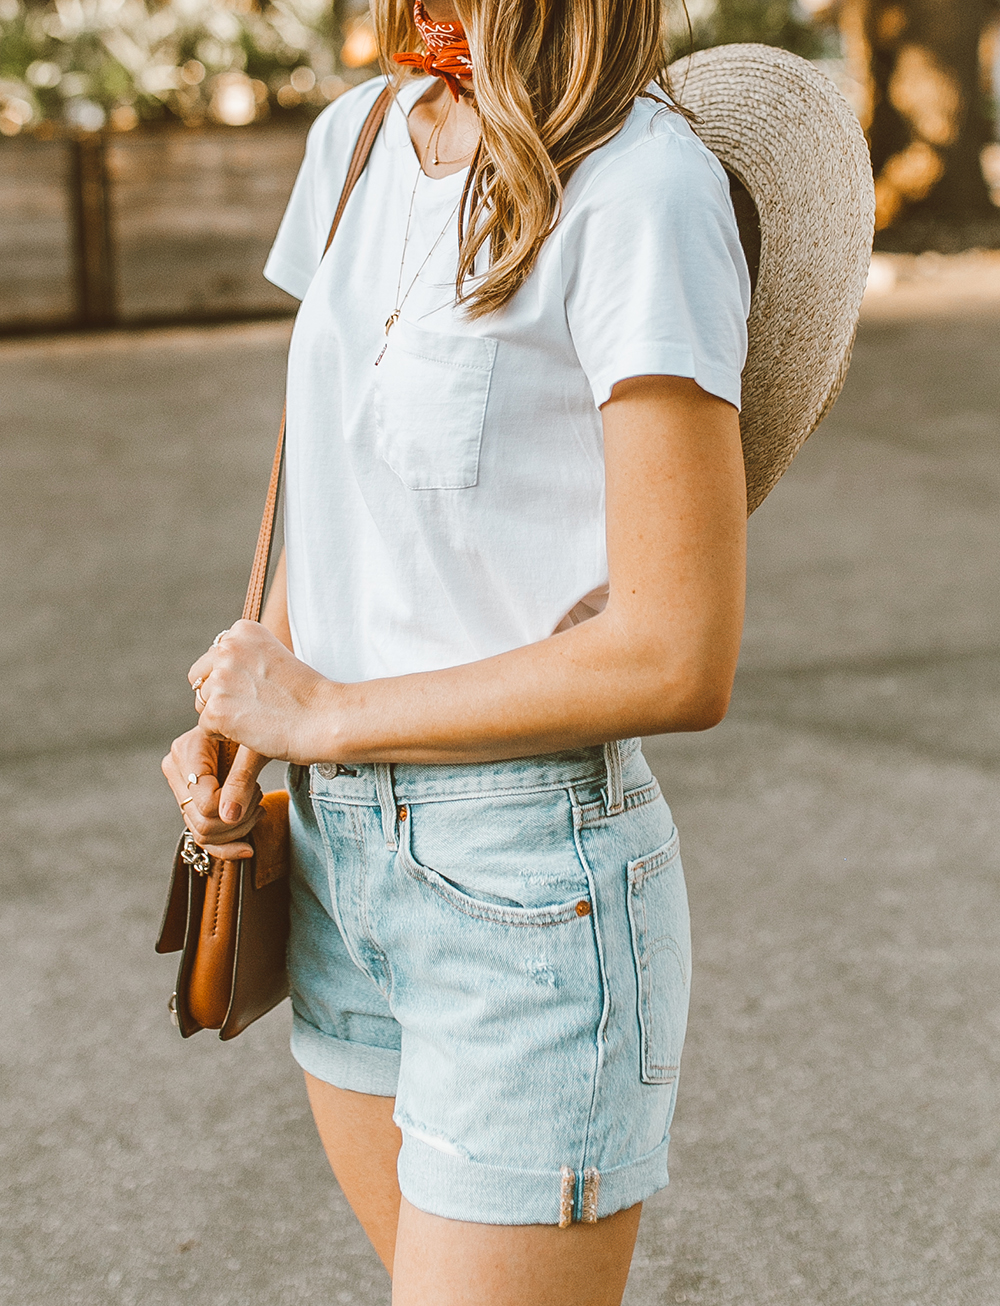 livvyland blog olivia watson austin texas fashion style blogger what to wear levis denim shorts festival outfit idea 12 - Summer time In Levi's